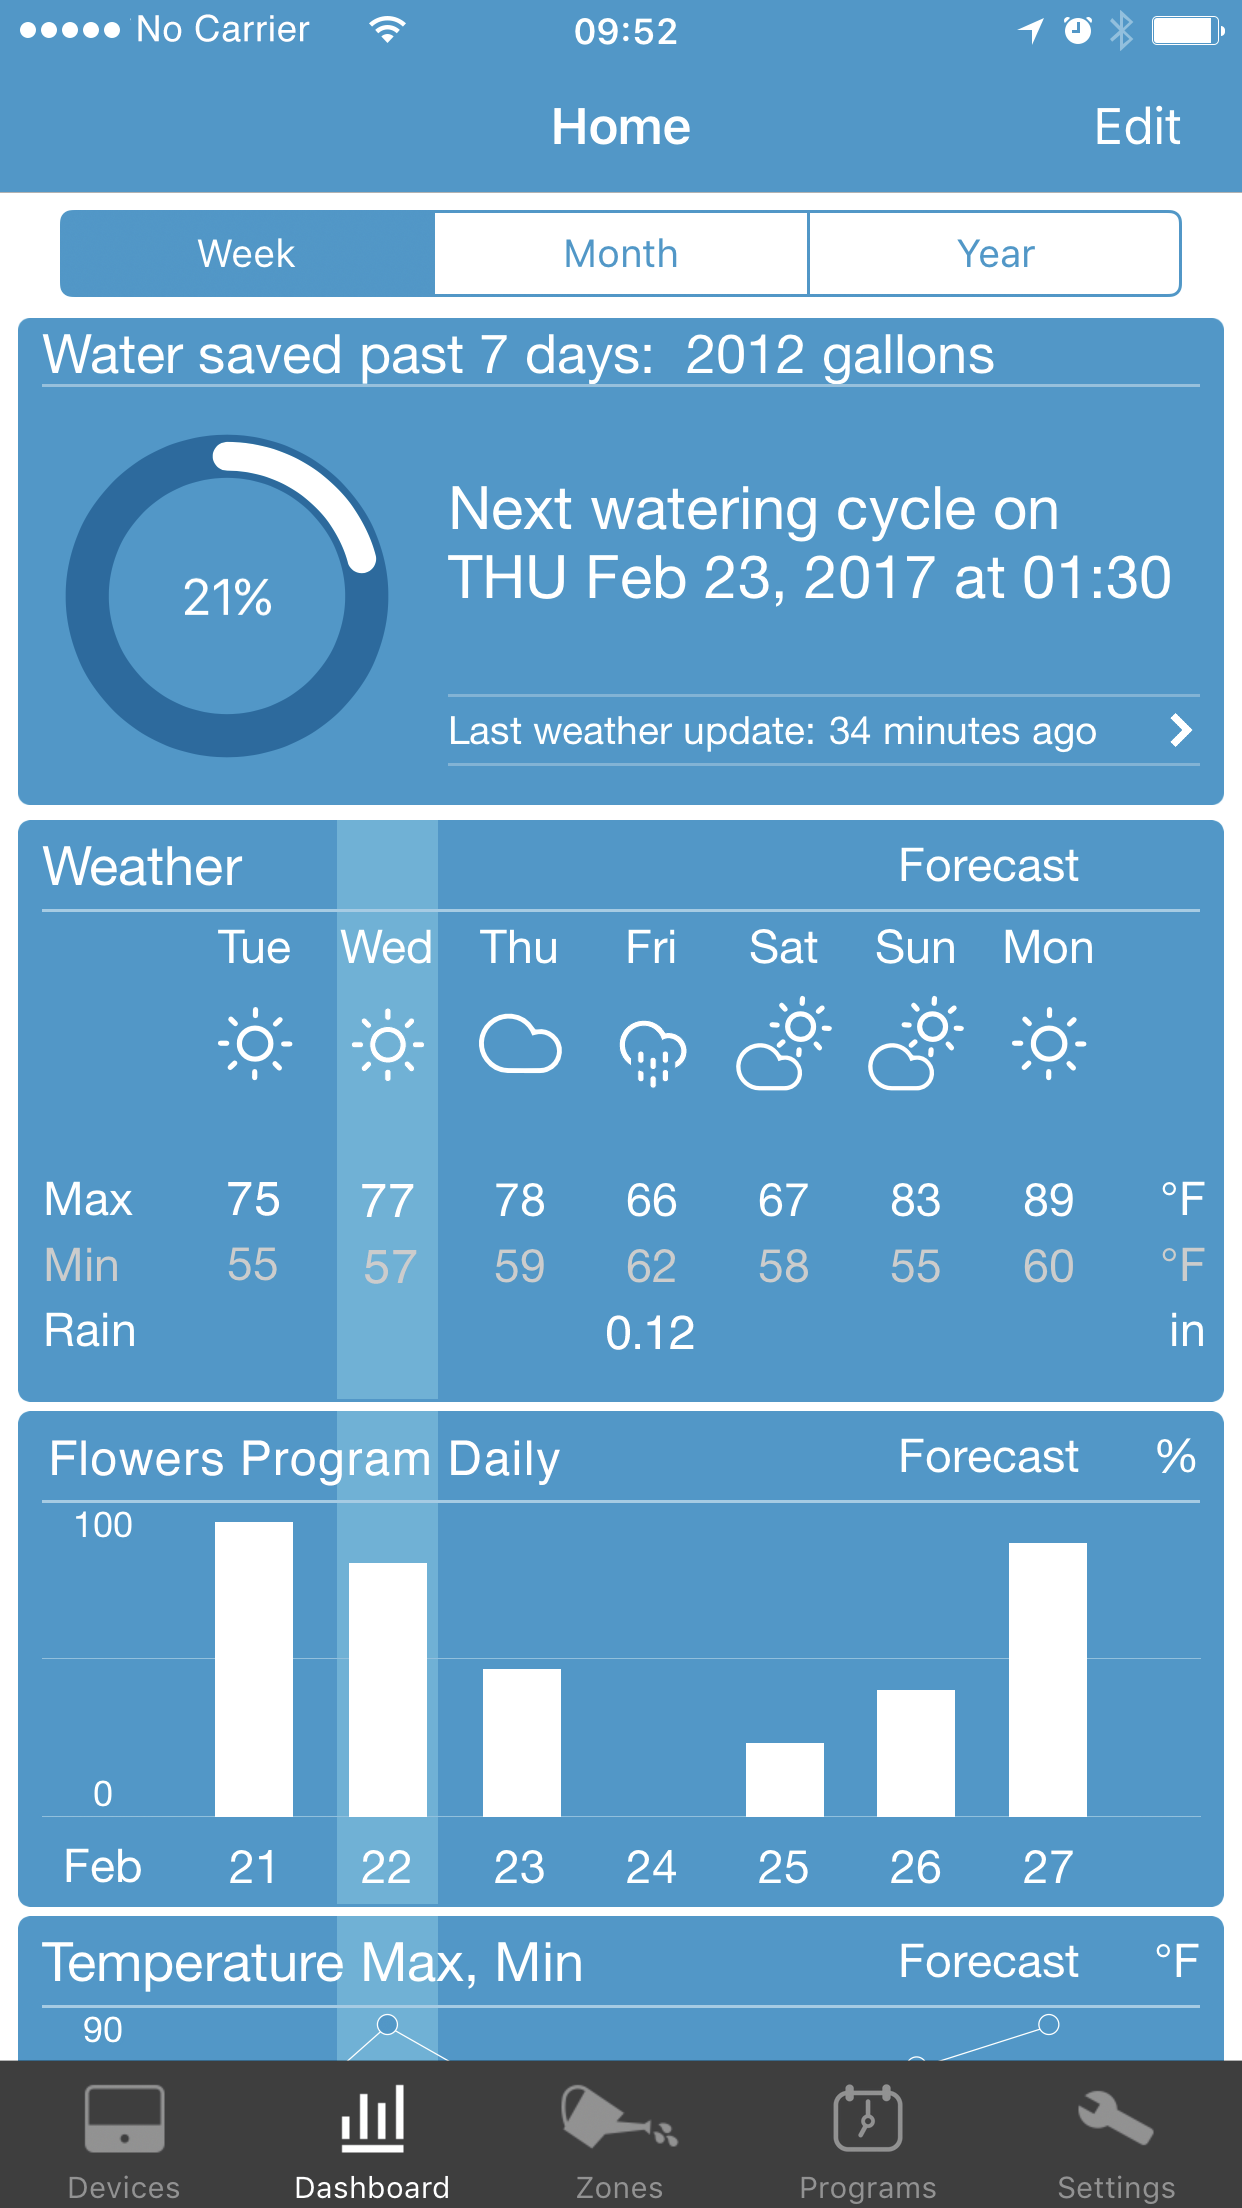 RainMachine - Forecast Smart WiFi Irrigation Controllers